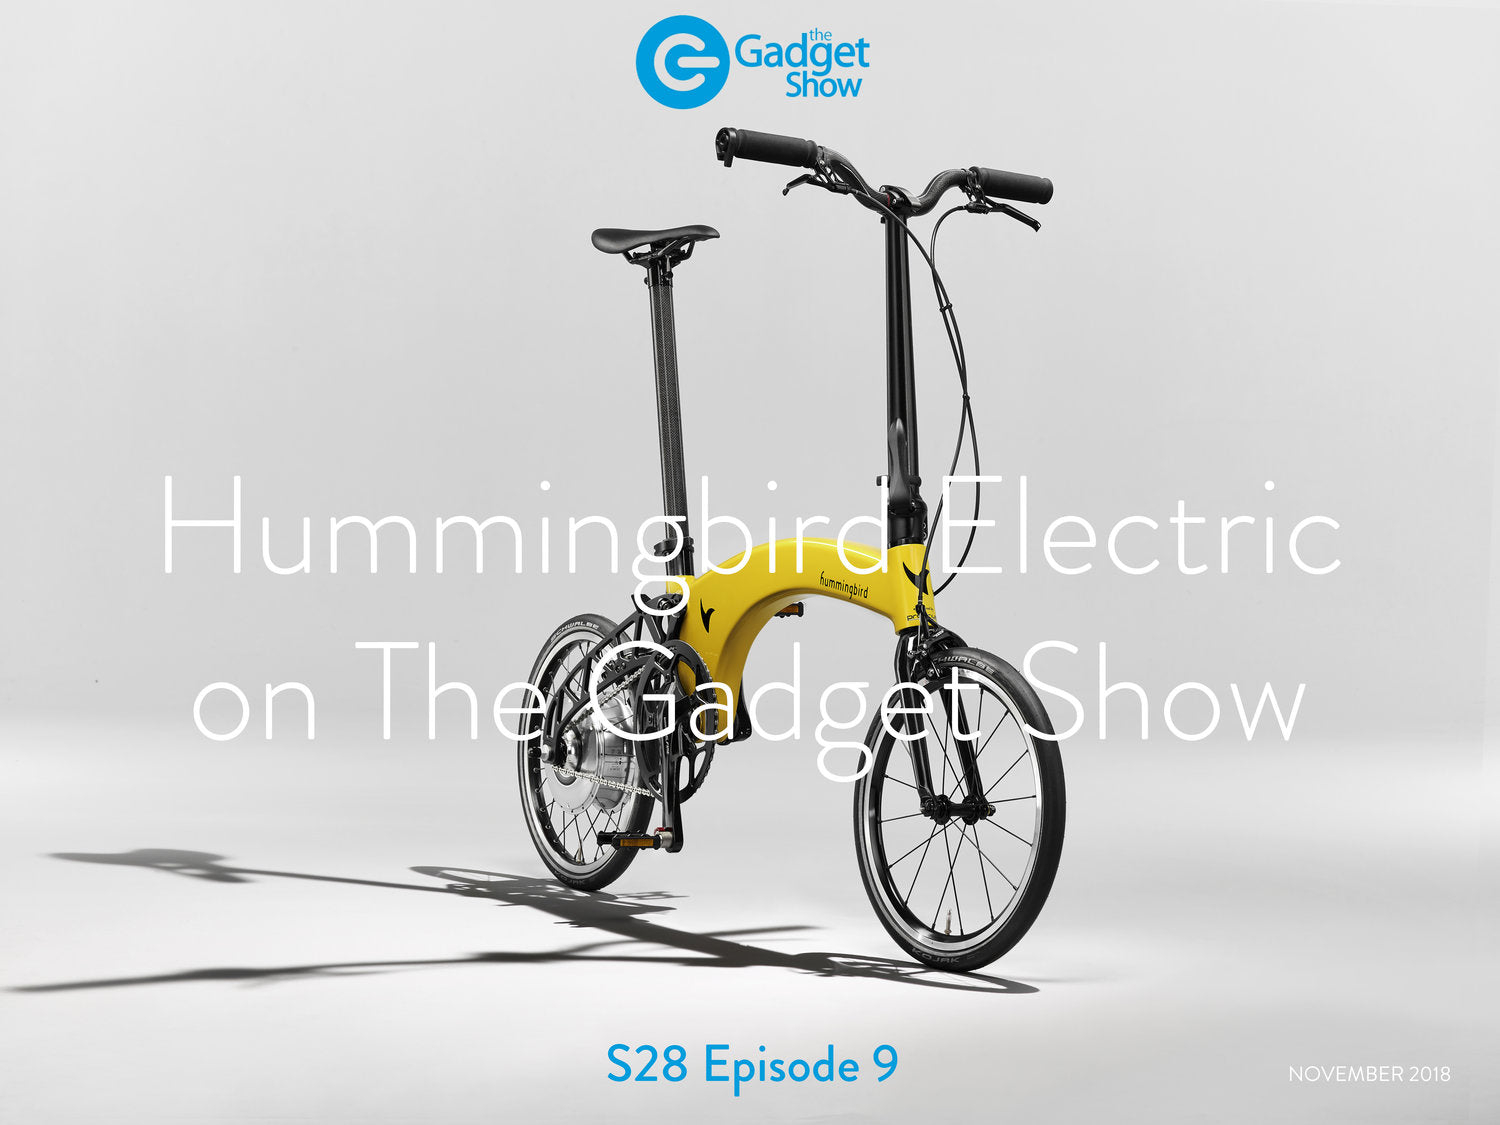 Hummingbird electric review on the Gadget Show